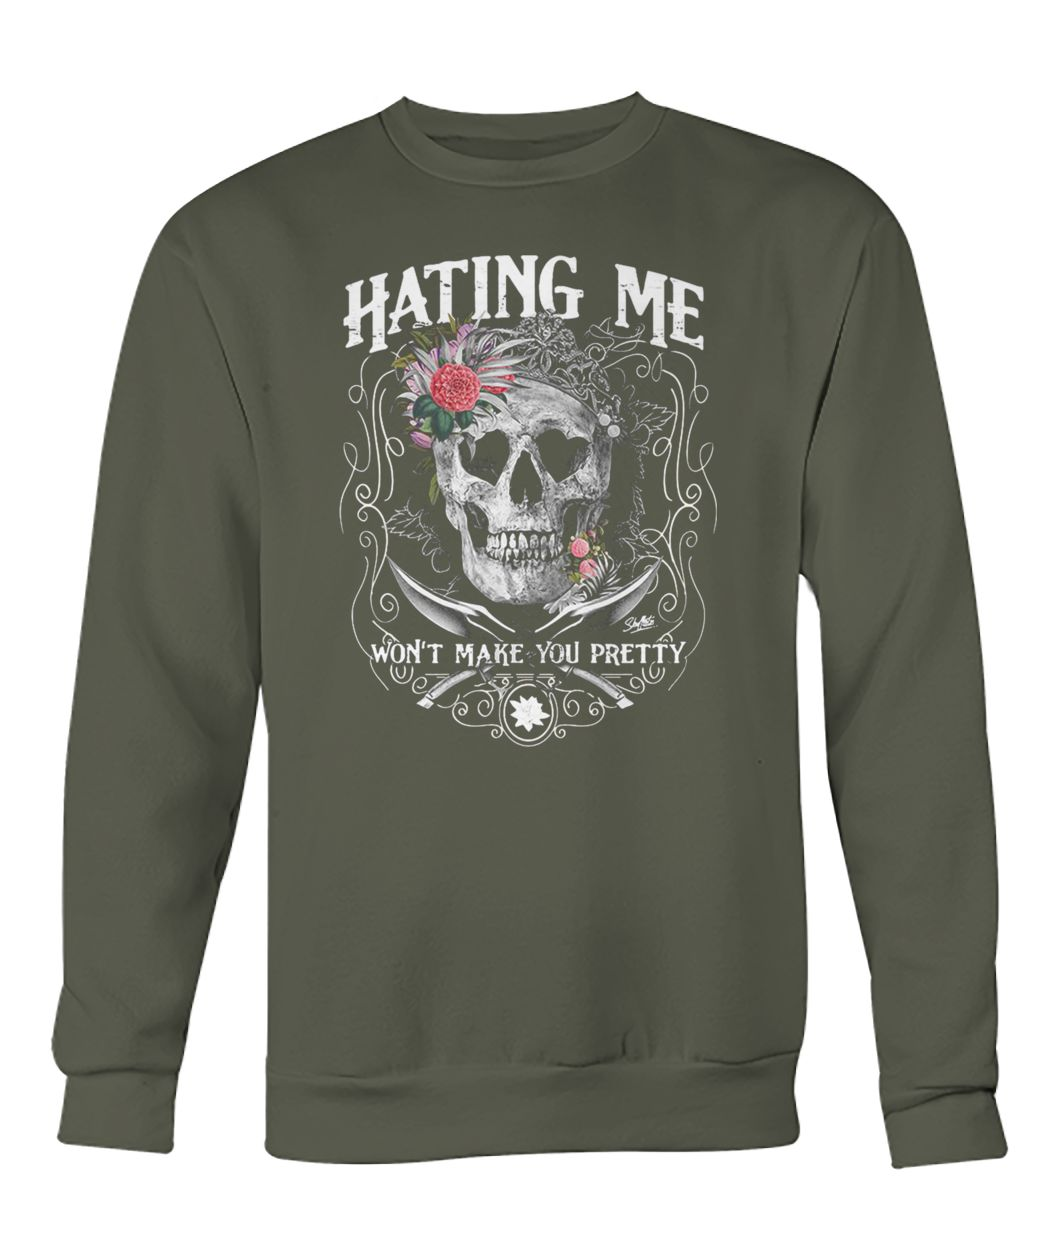 Skull queen hating me won't make you pretty crew neck sweatshirt